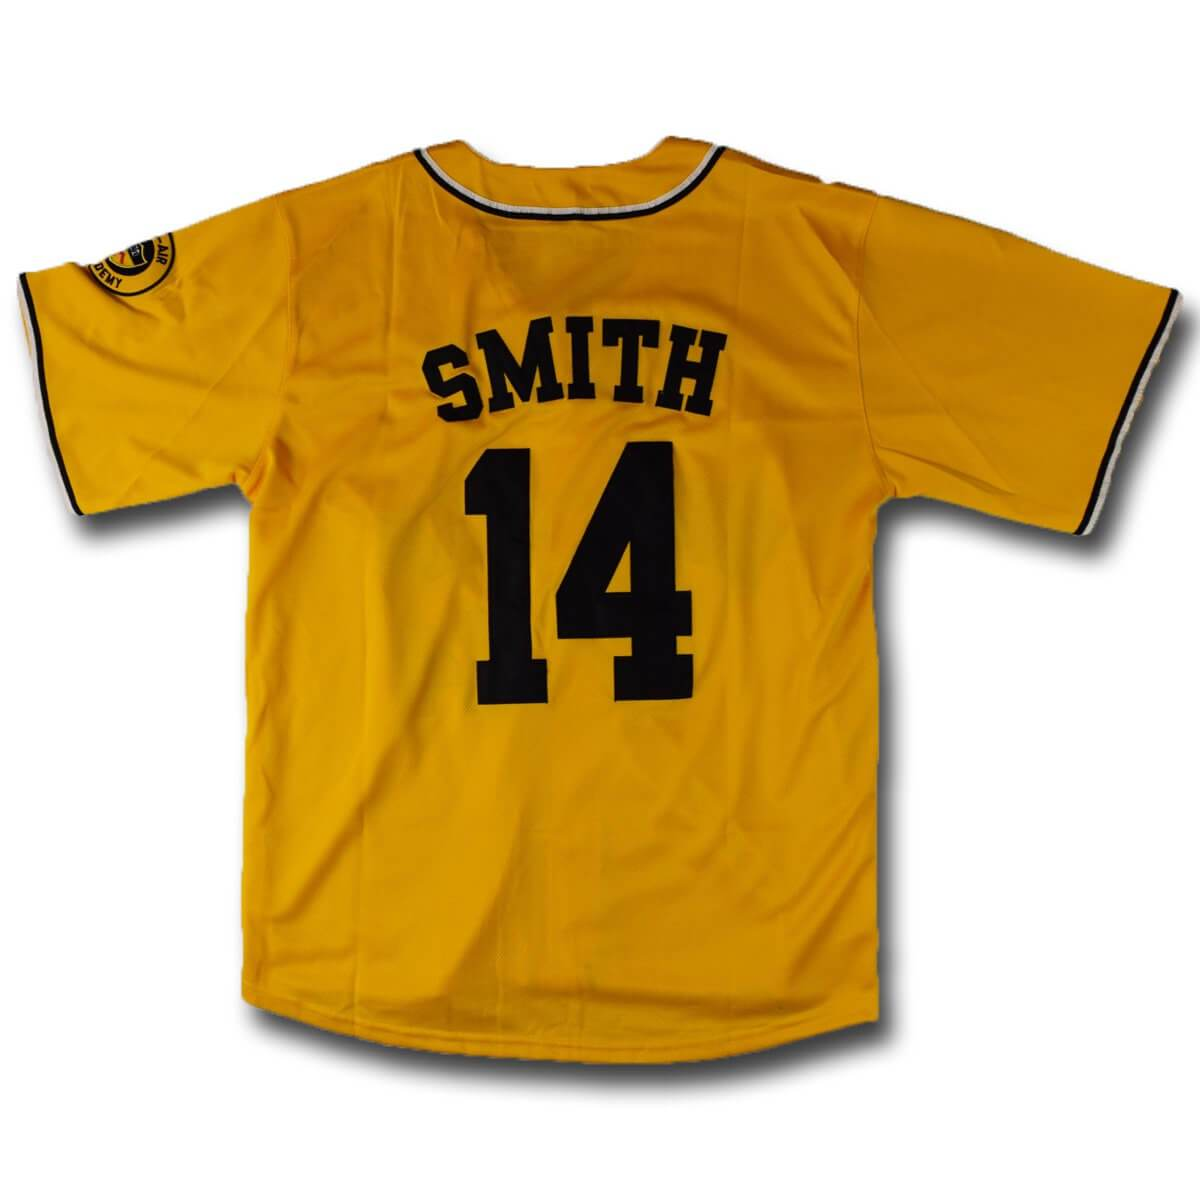 Fresh Prince of Bel Air Baseball Jersey Will Smith #14